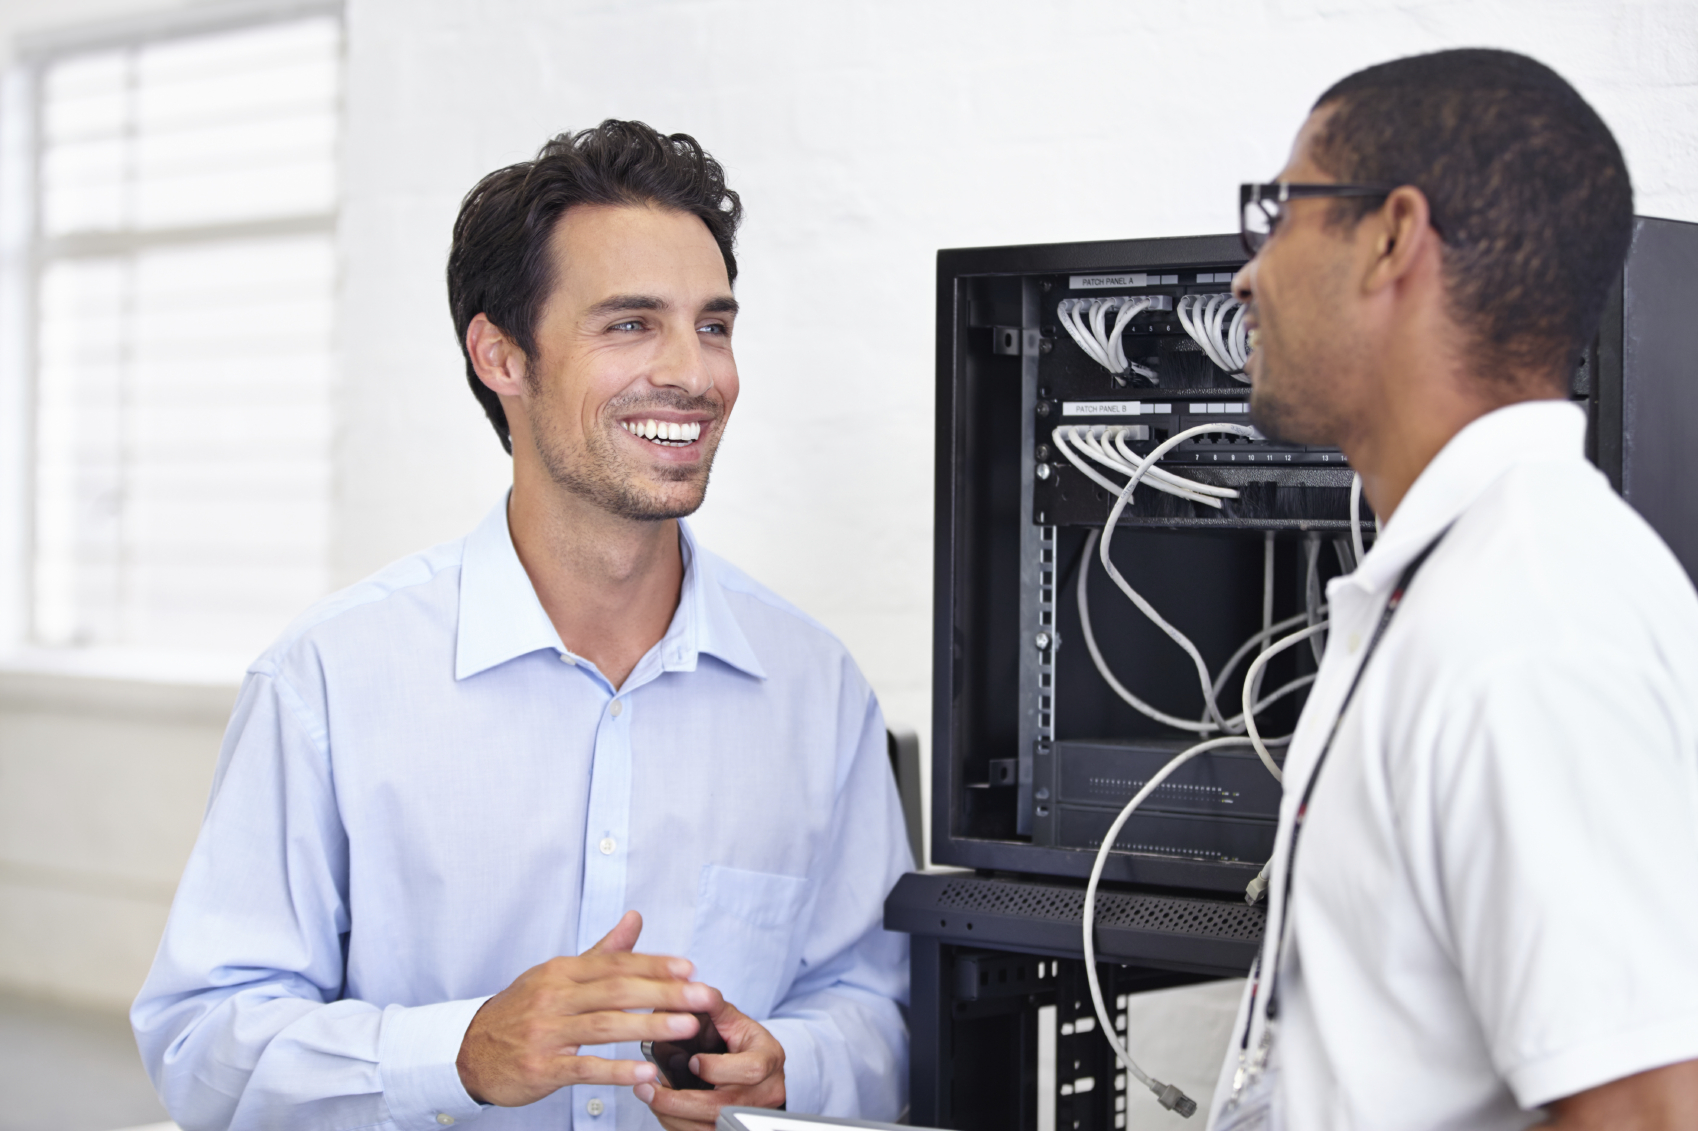 5 Reasons Your Business Needs Computer IT Support